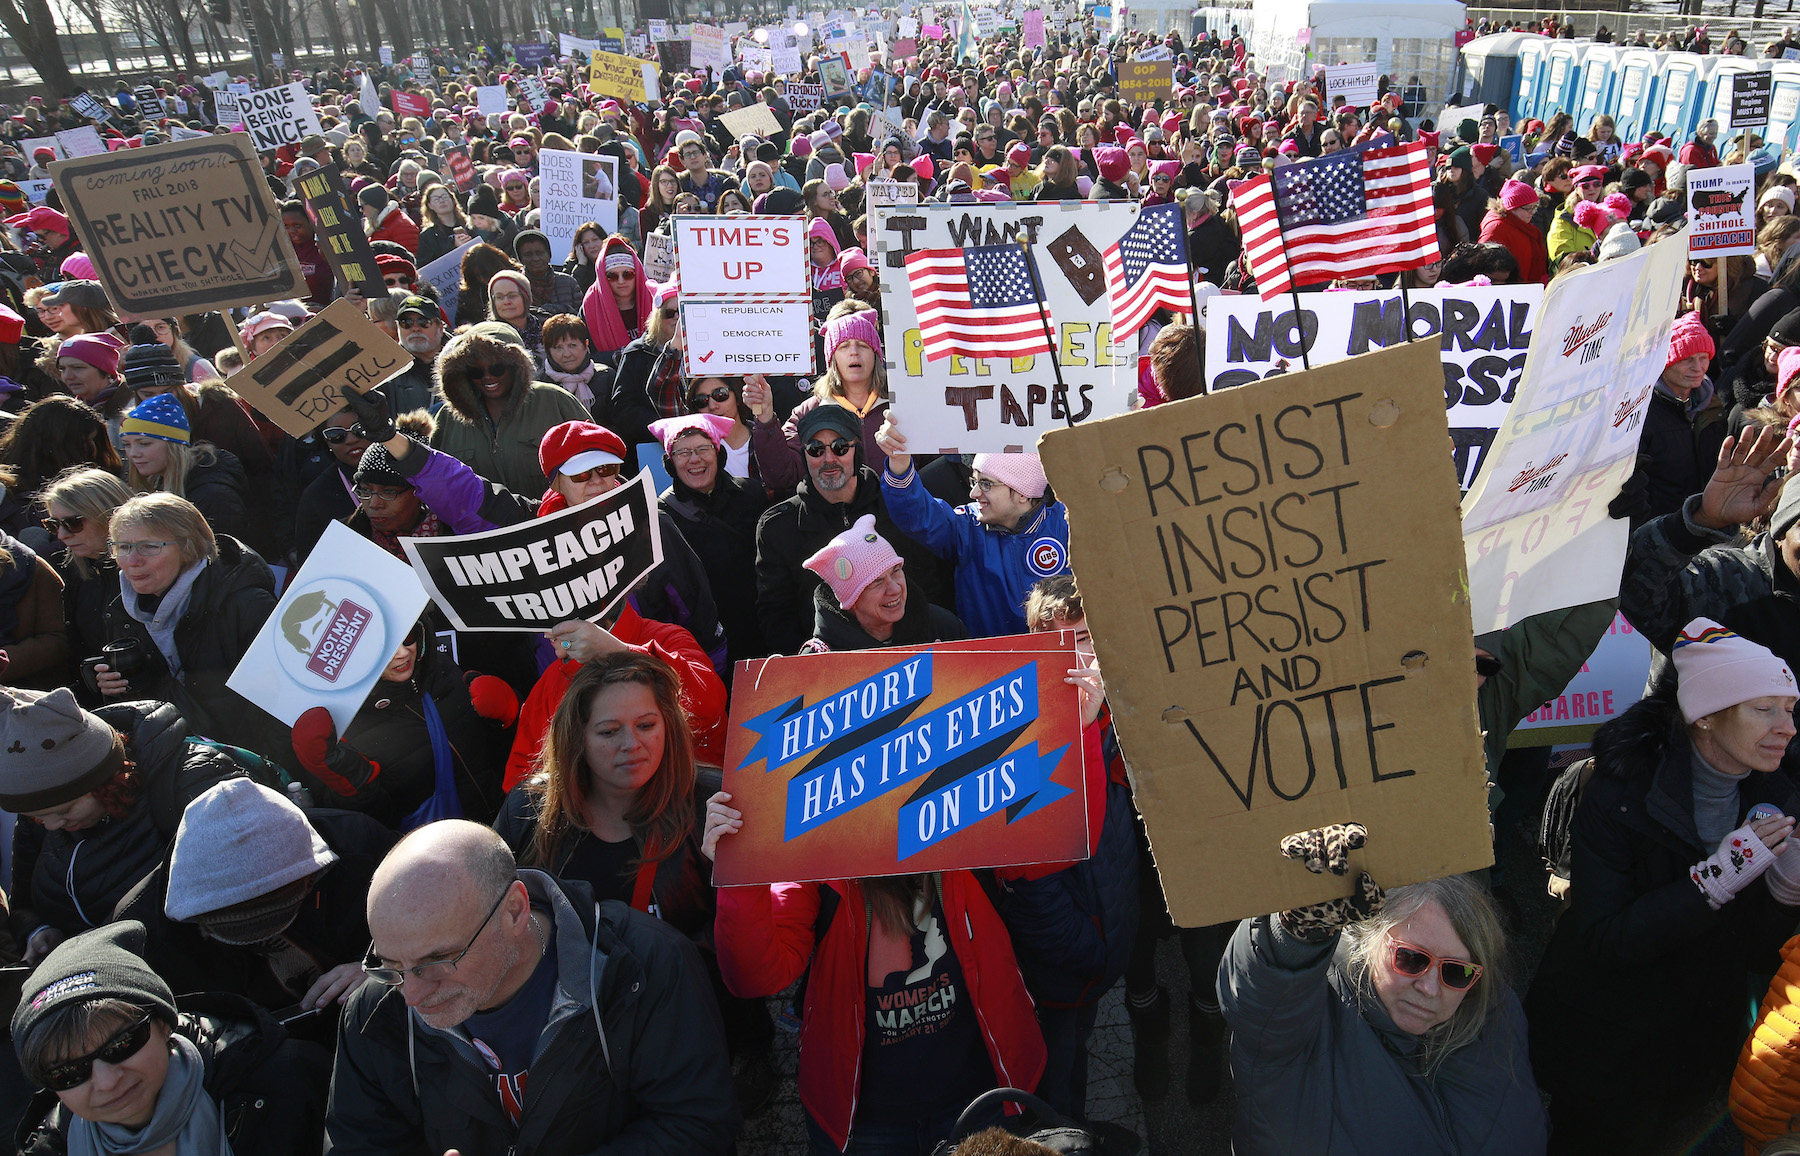 <div class='meta'><div class='origin-logo' data-origin='none'></div><span class='caption-text' data-credit='Jim Young/AFP/Getty Images'>Demostrators attend the Second Annual Women's March Chicago on January 20, 2018 in Chicago, Illinois.</span></div>